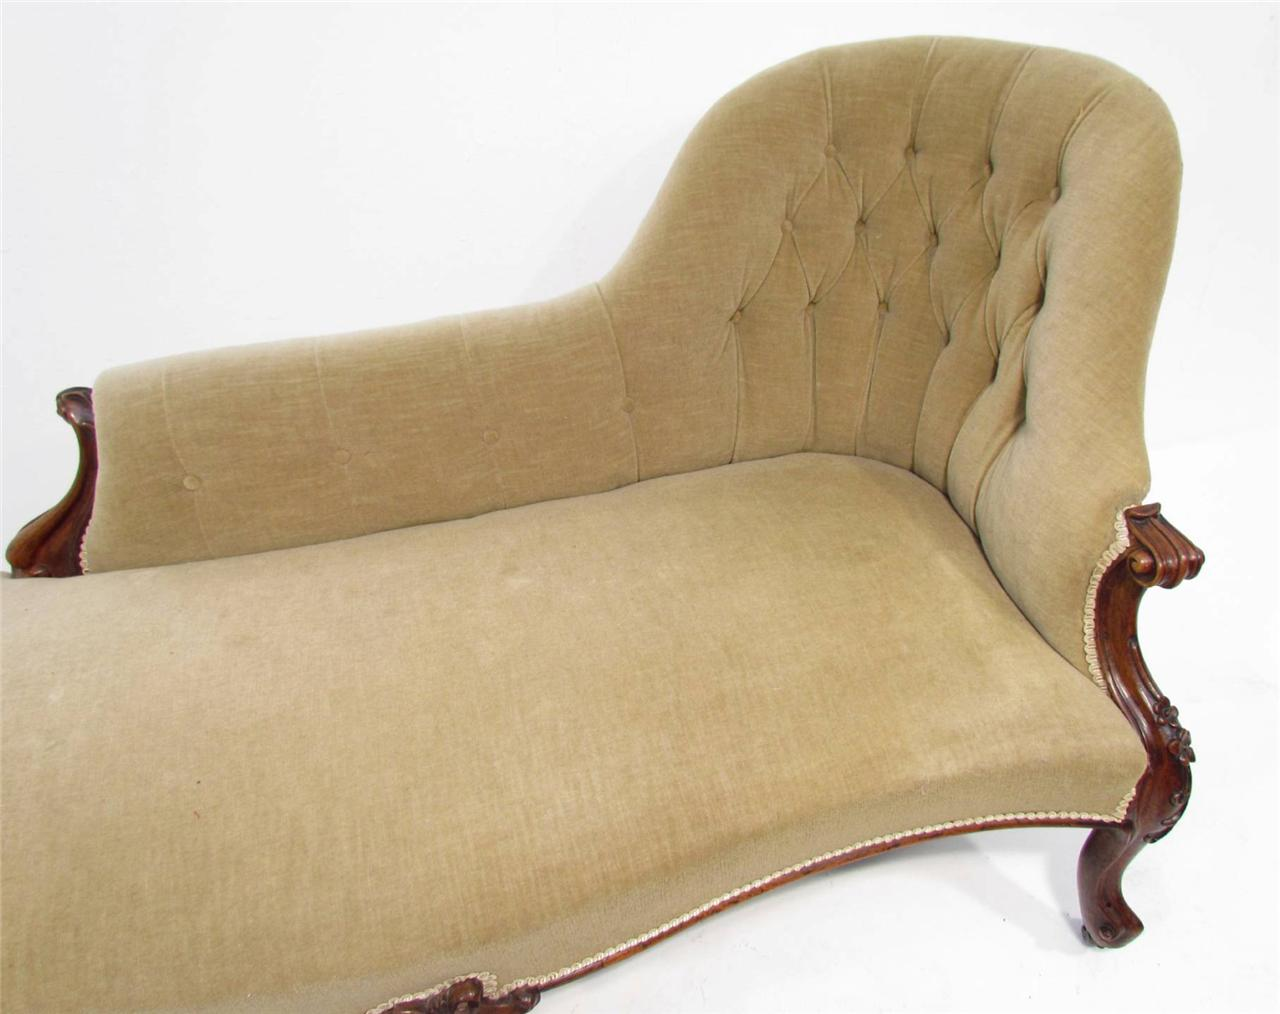 Antique chaise lounge sofa antique chaise lounge sofa for Antique chaise longue ebay